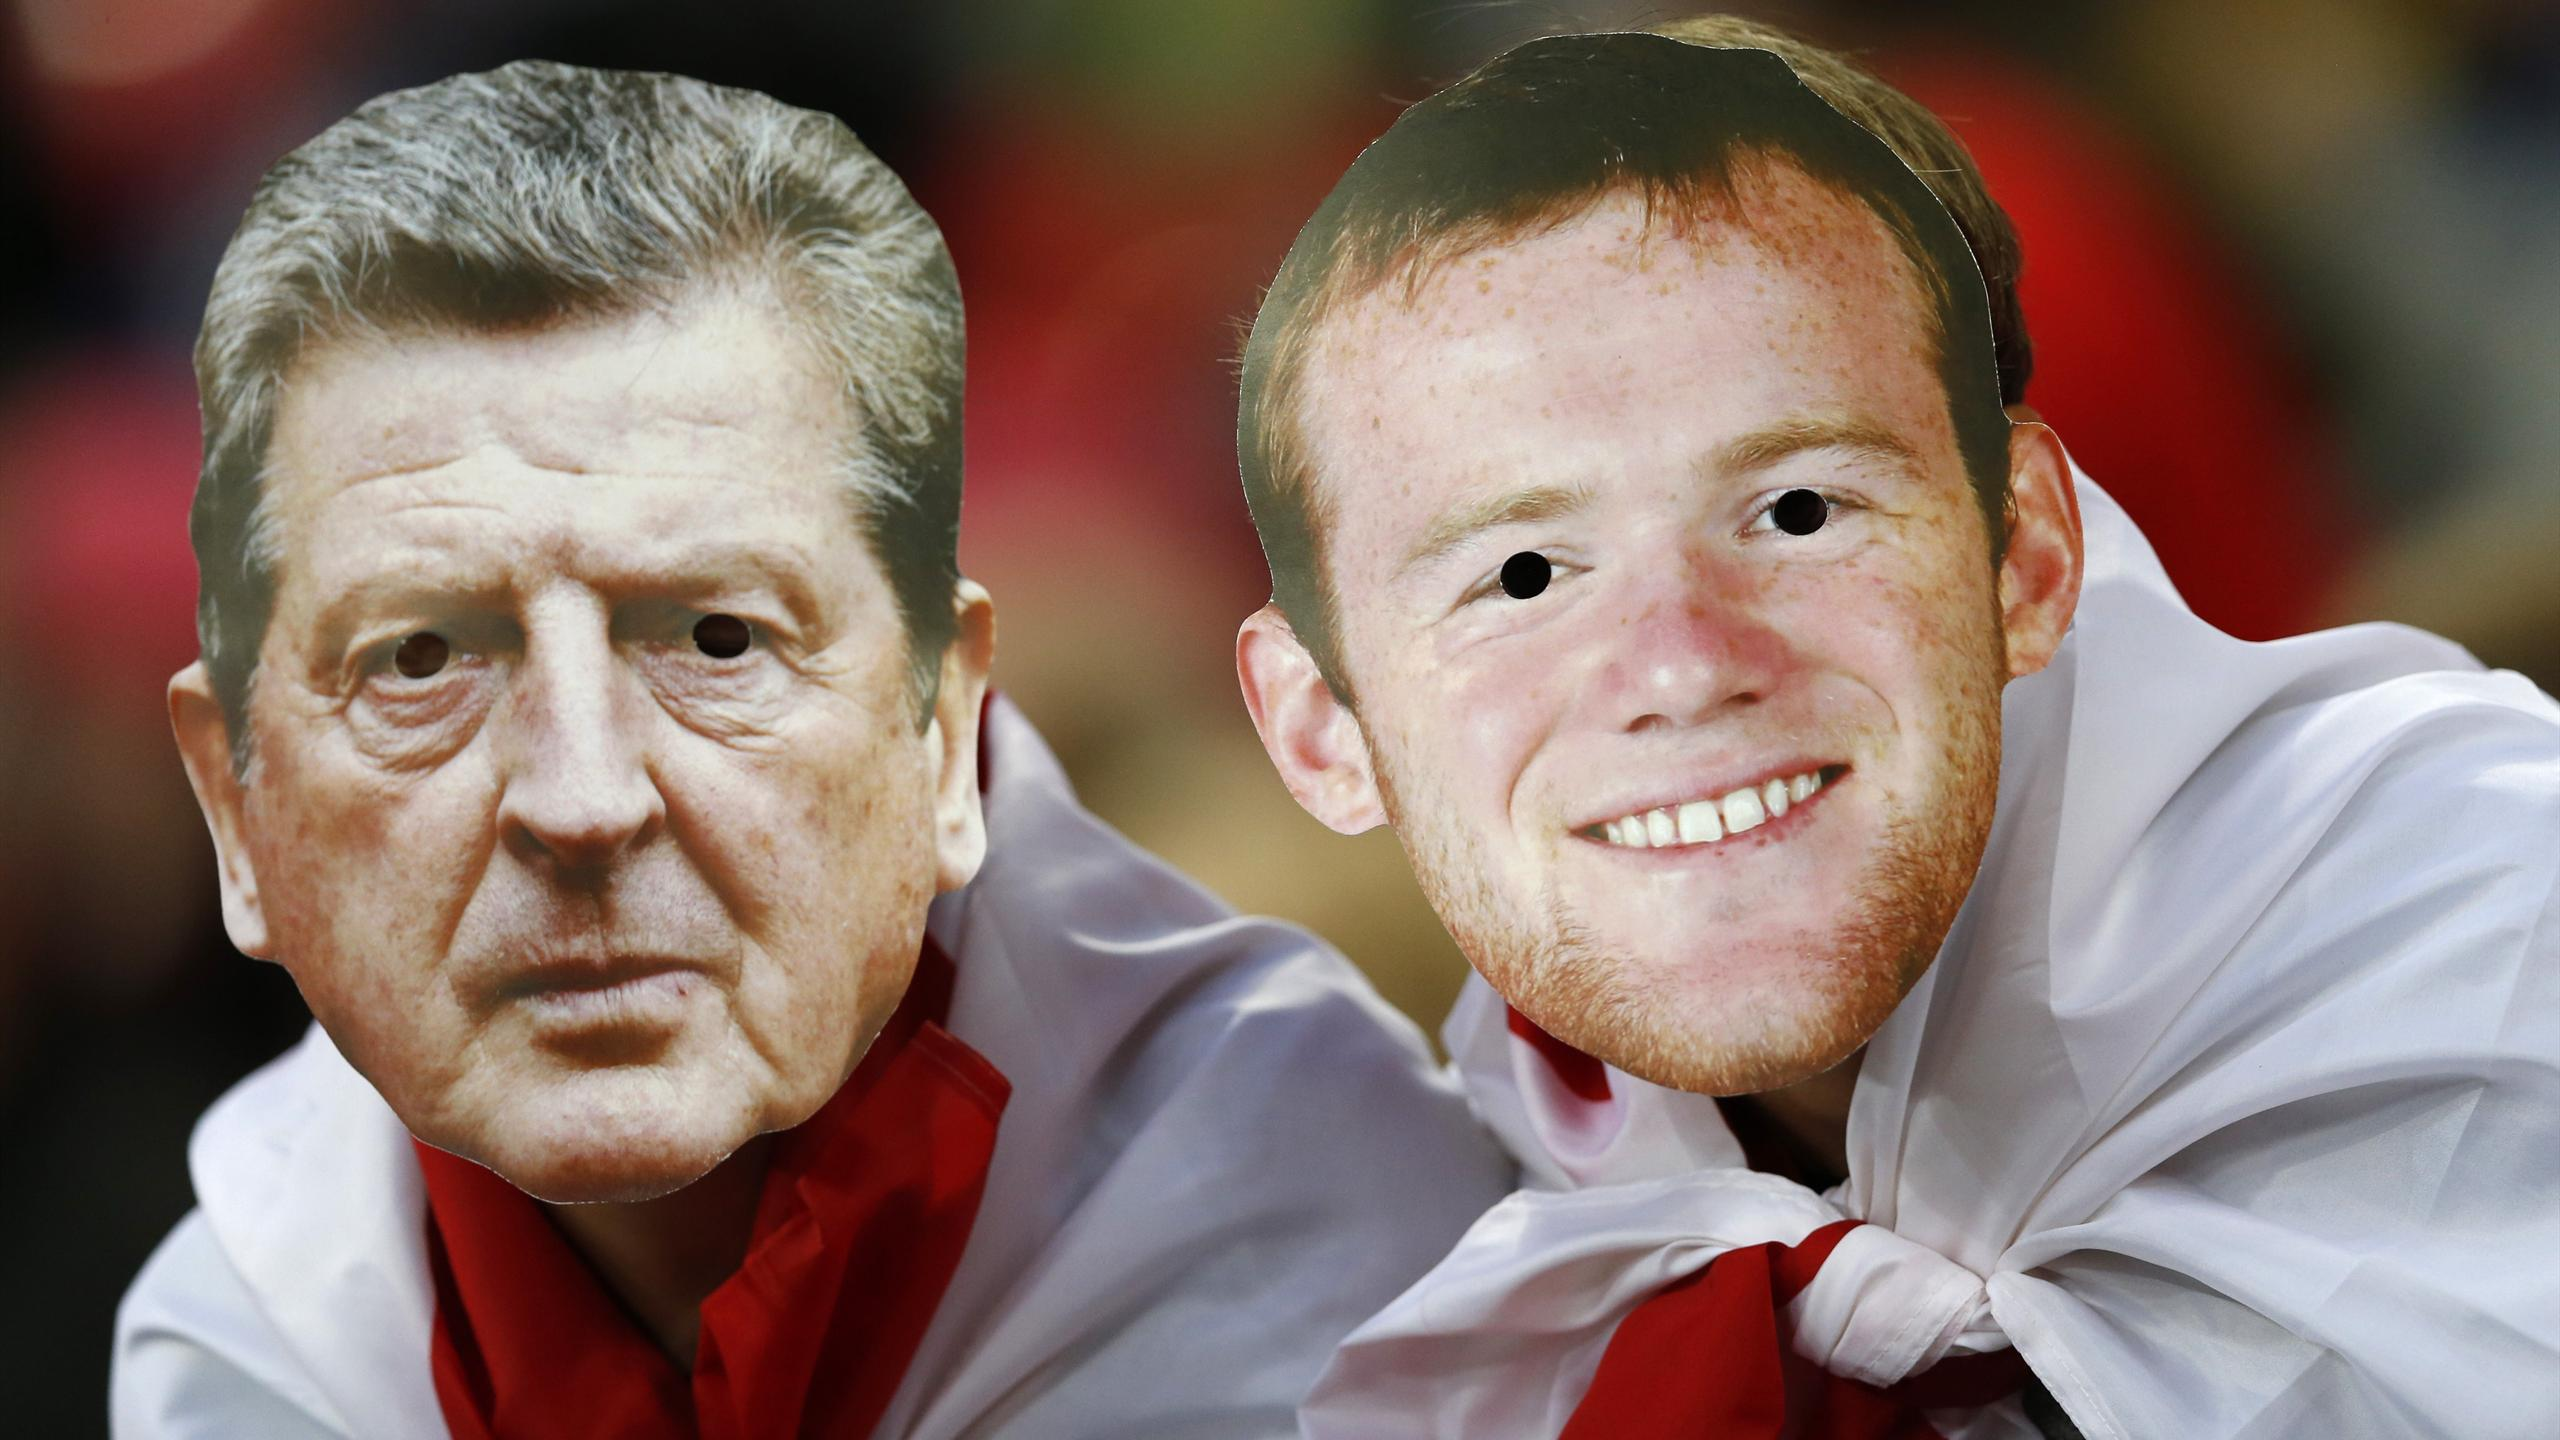 Fans wearing Roy Hodgson and Wayne Rooney masks at an England game